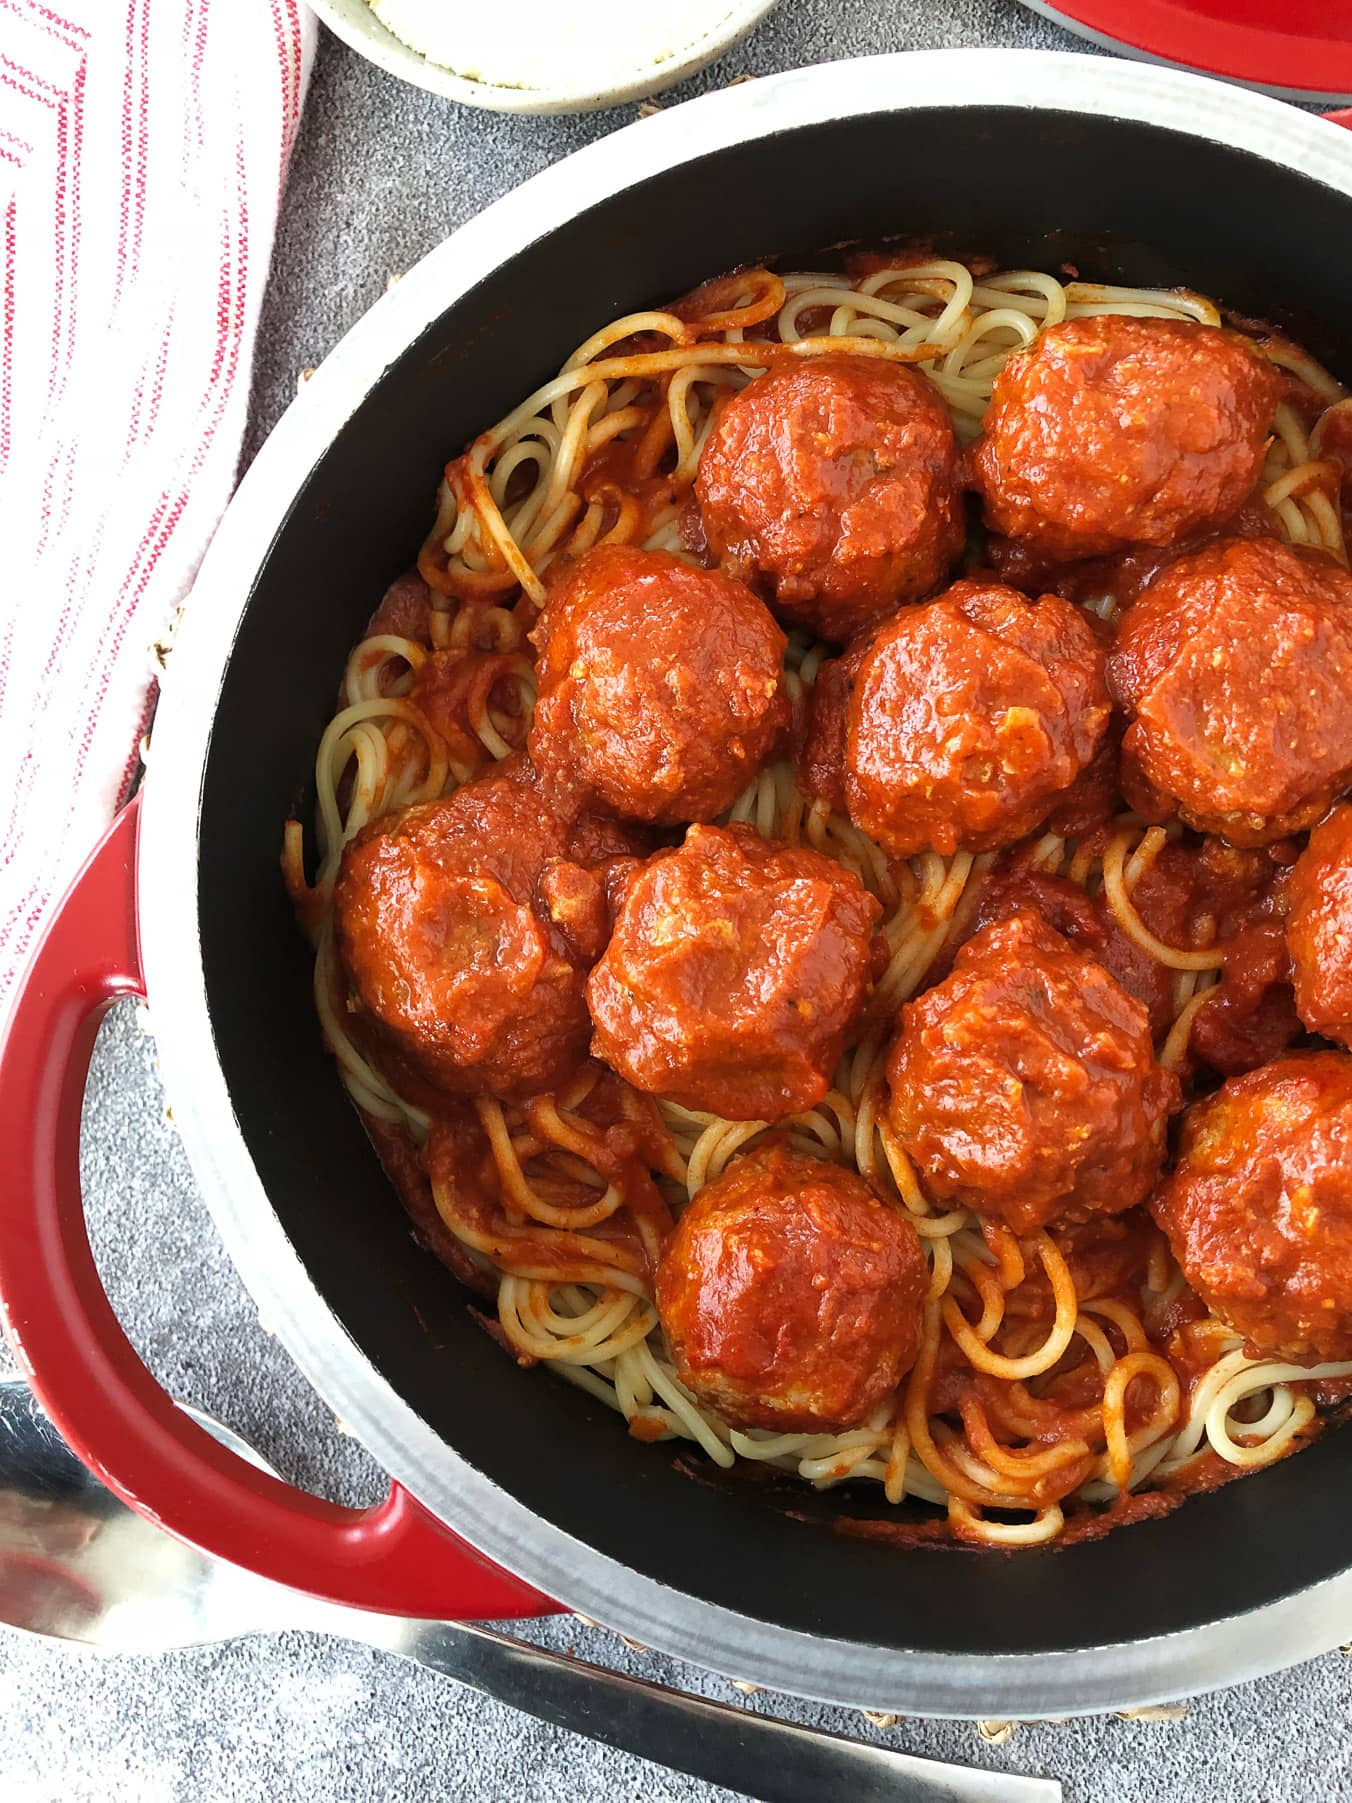 Spaghetti and Turkey Meatballs